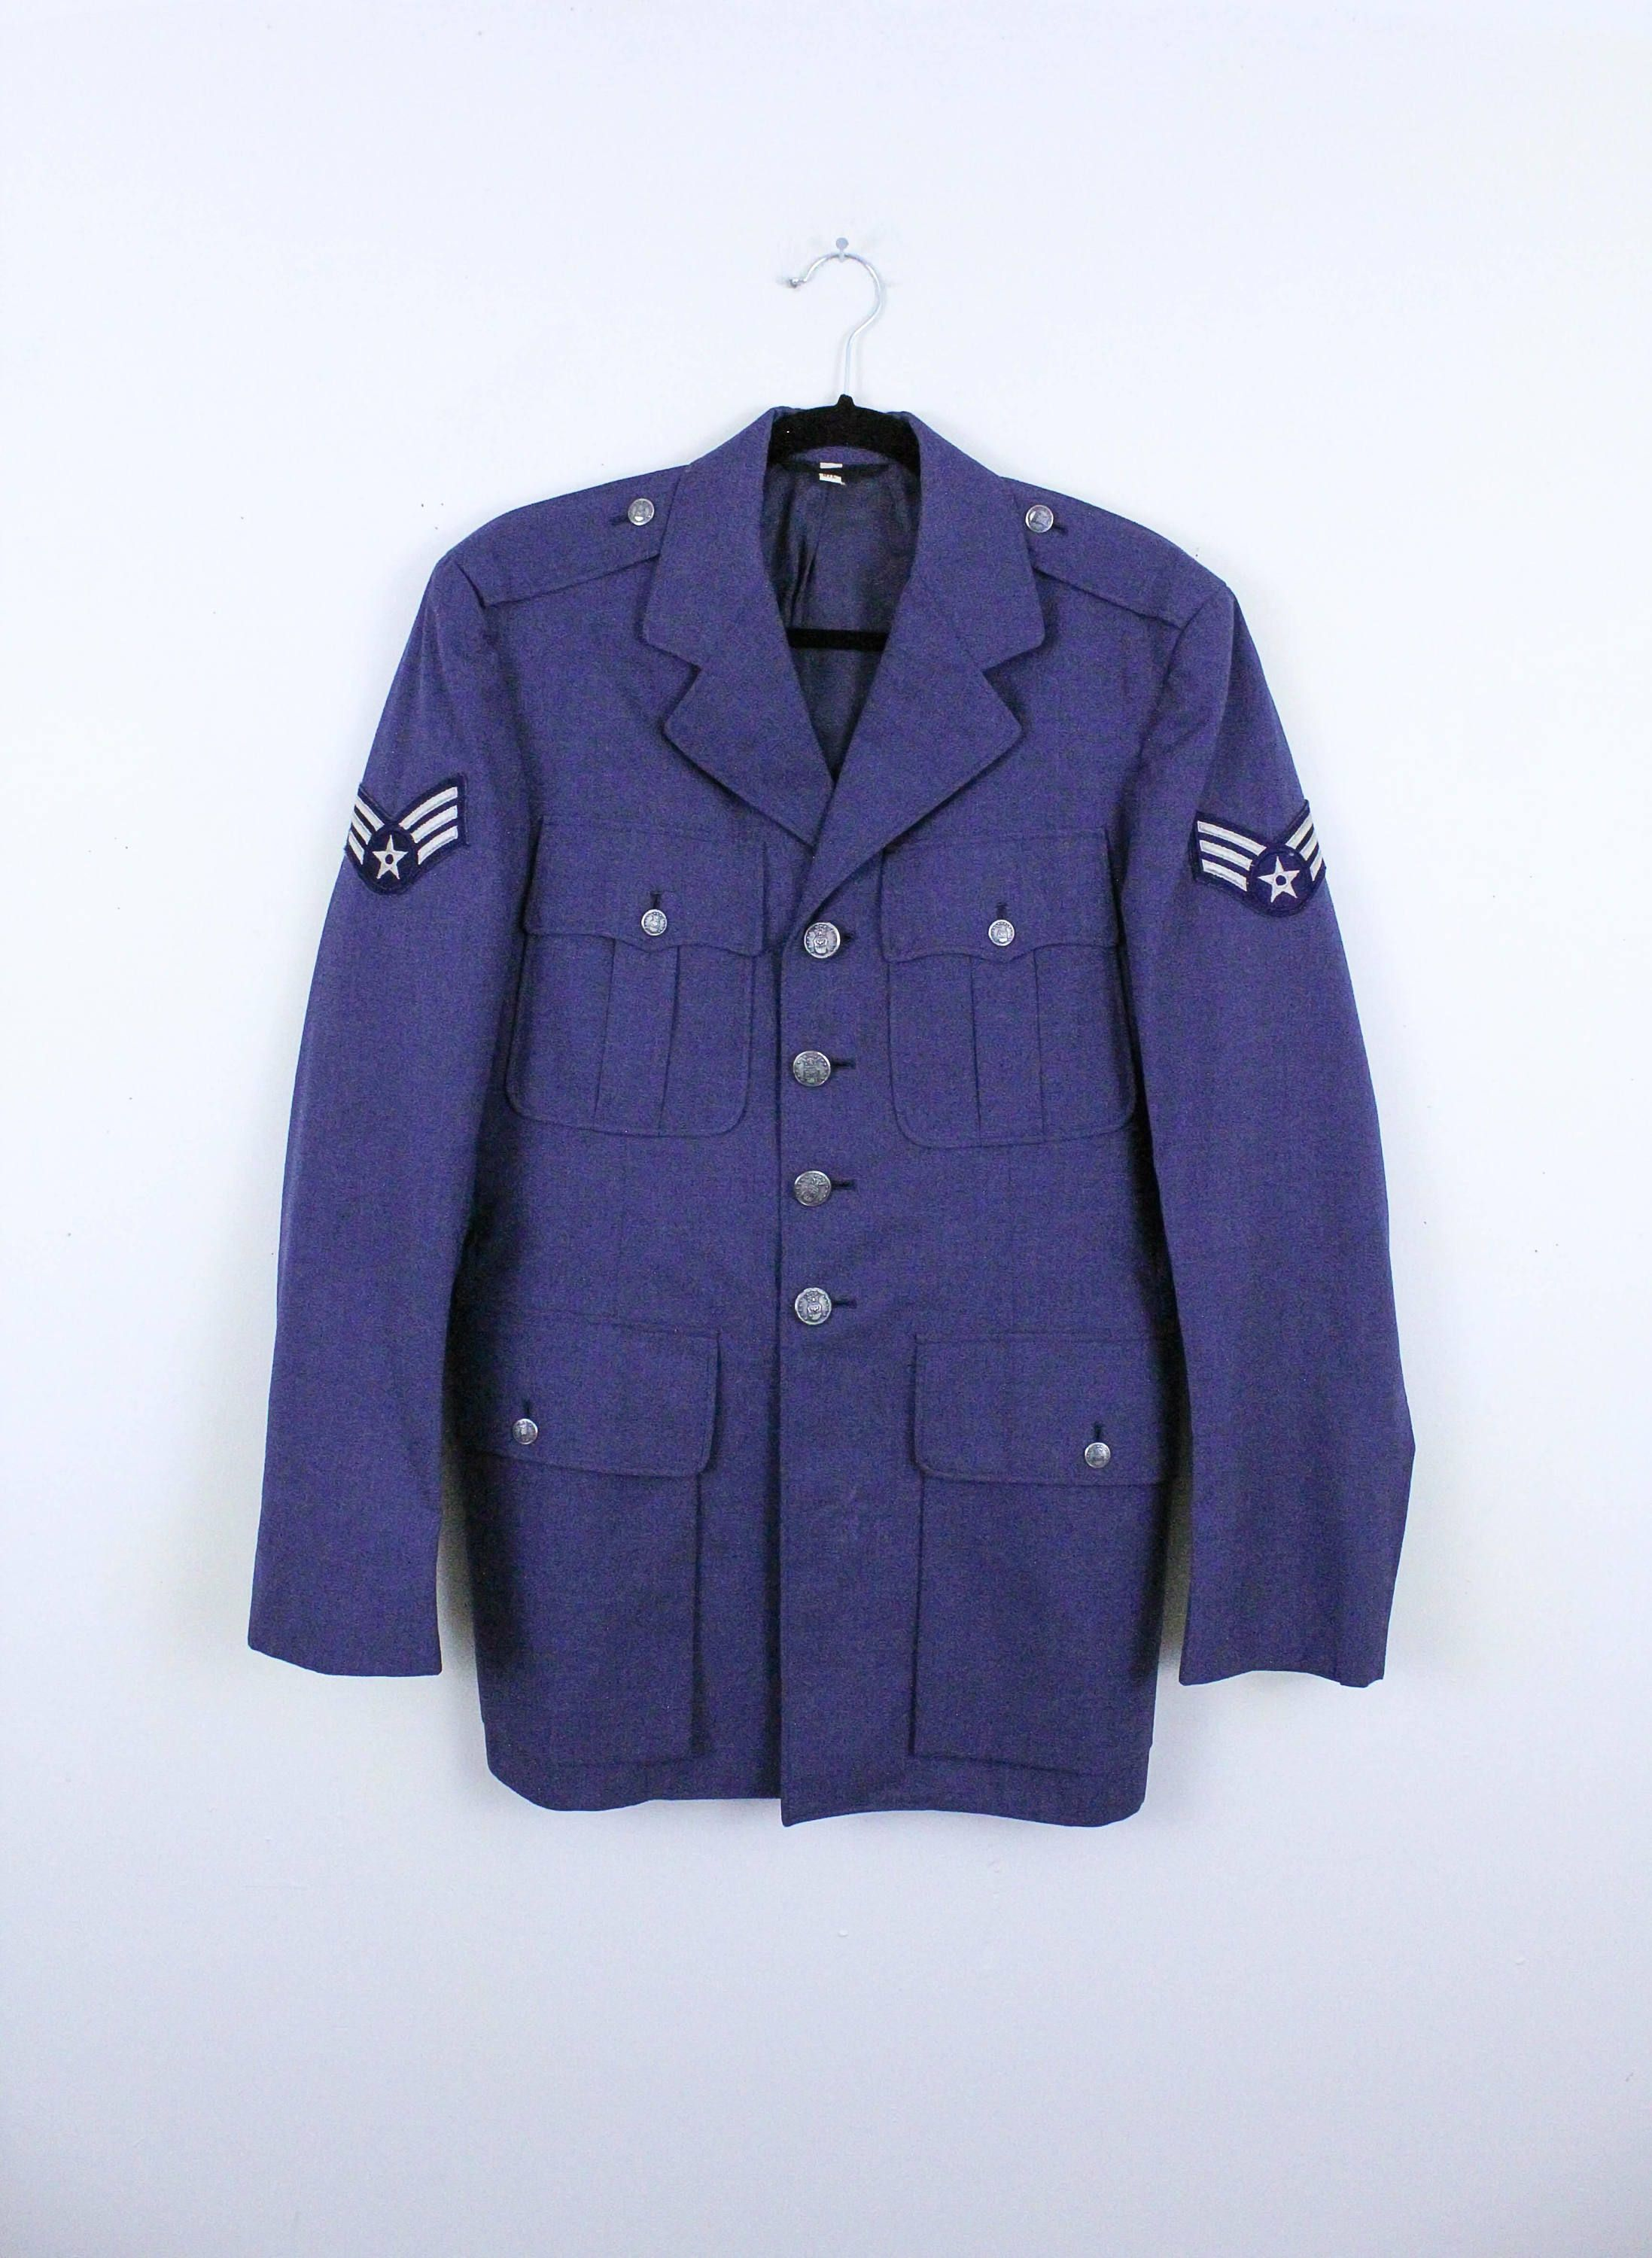 Vintage air force uniform